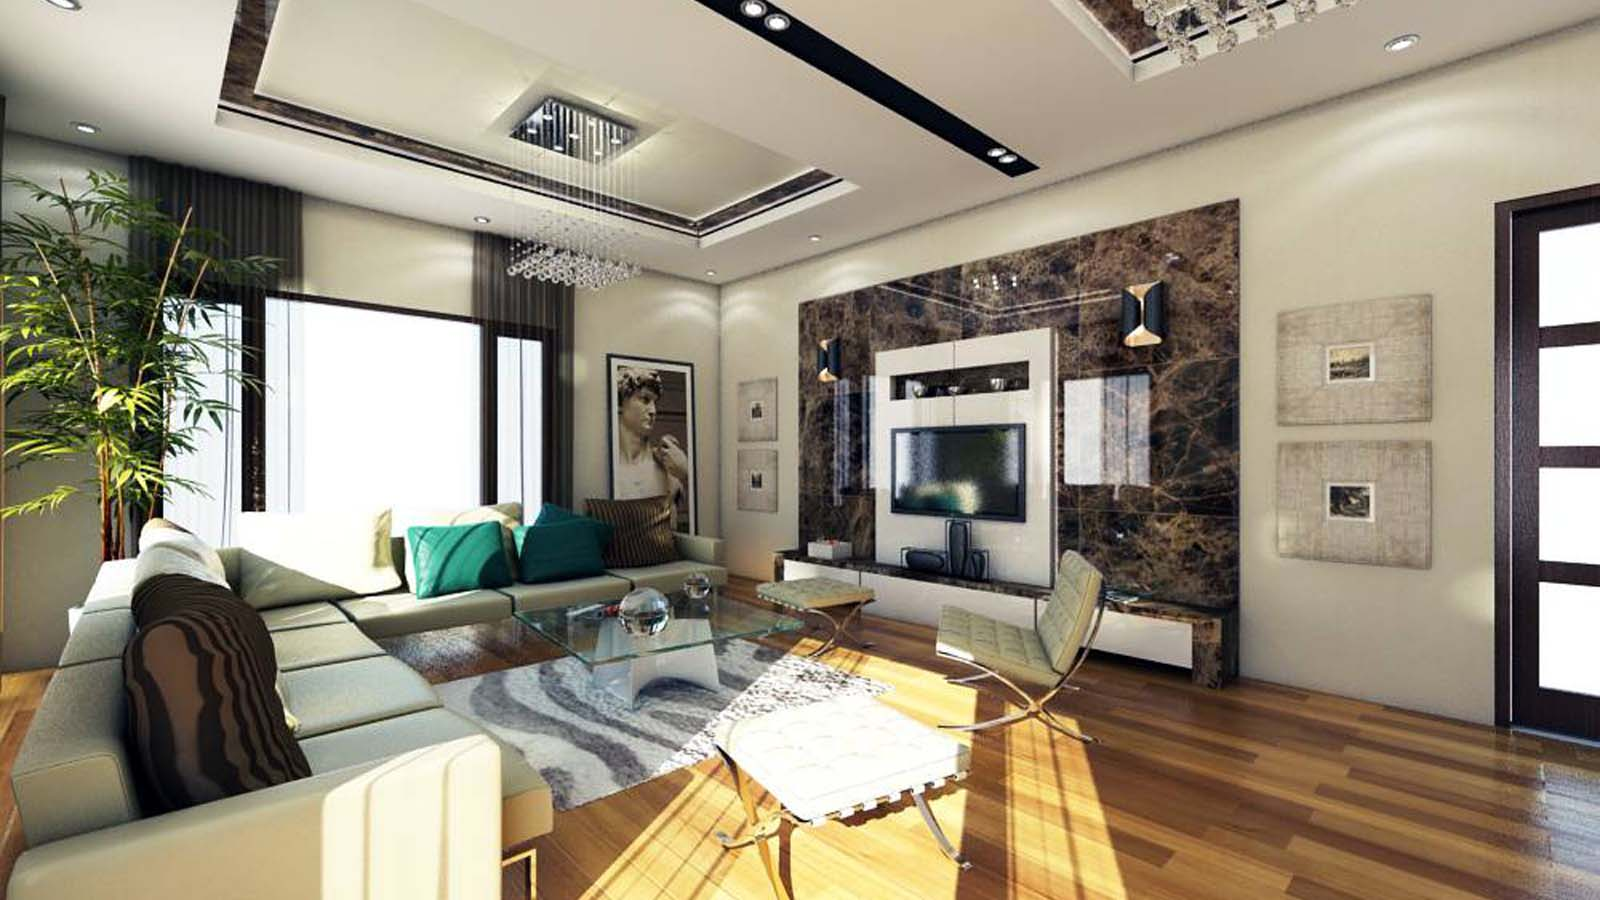 DRAWING ROOM (Interior Design)